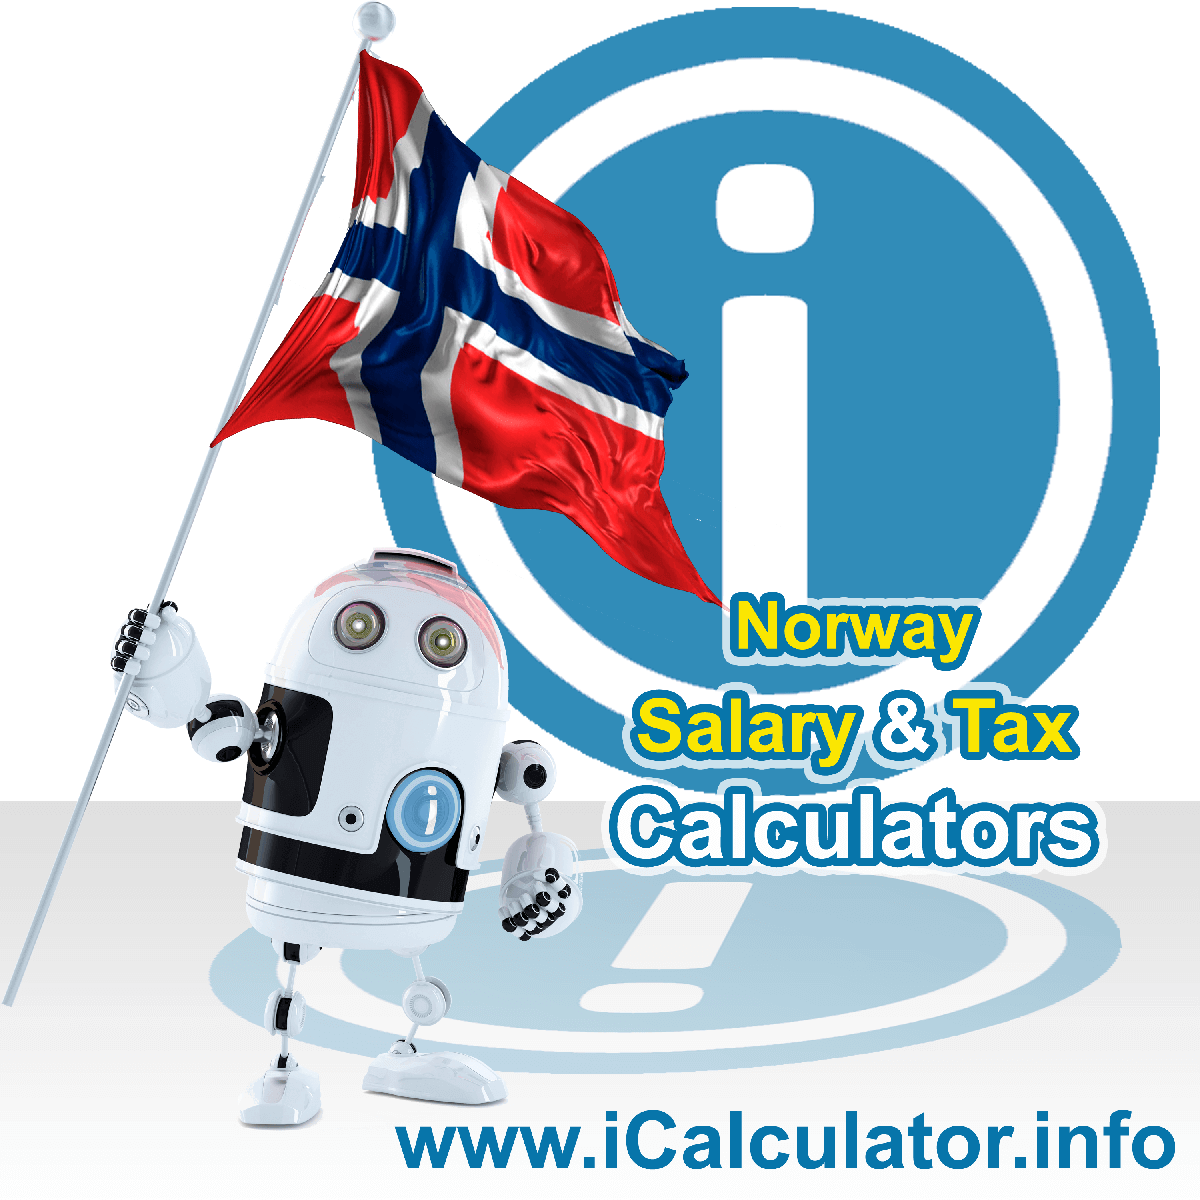 Norway Tax Calculator. This image shows the Norway flag and information relating to the tax formula for the Norway Salary Calculator